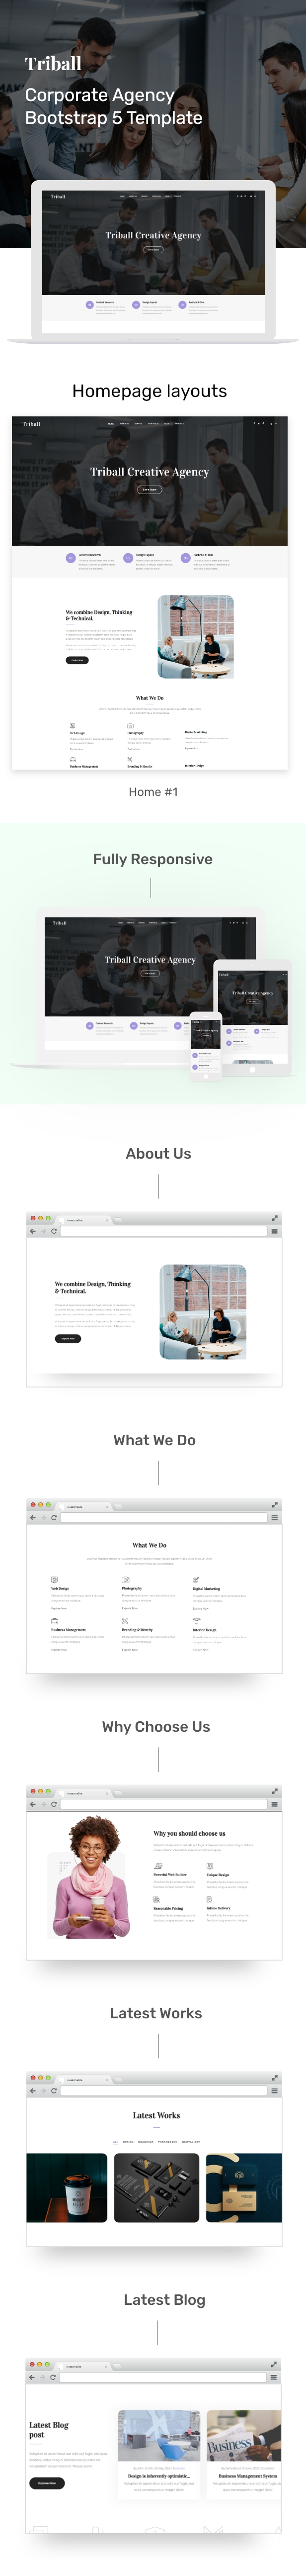 Triball - Corporate Agency Bootstrap 5 Template - 1